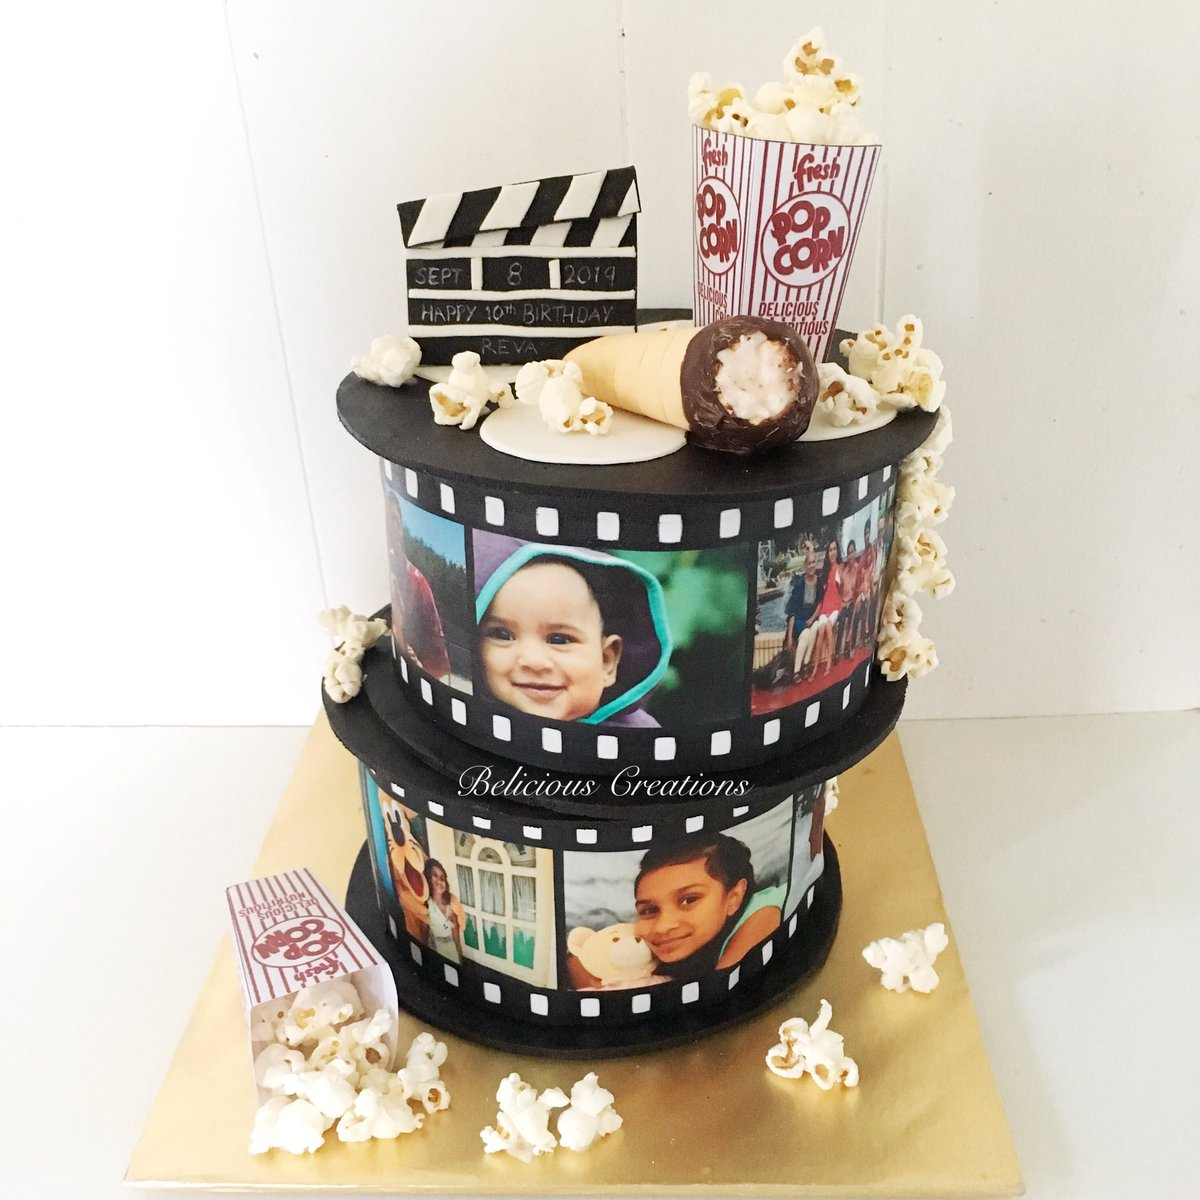 Marvelous Belicious Creations On Twitter A Film Roll Themed Birthday Cake Funny Birthday Cards Online Alyptdamsfinfo